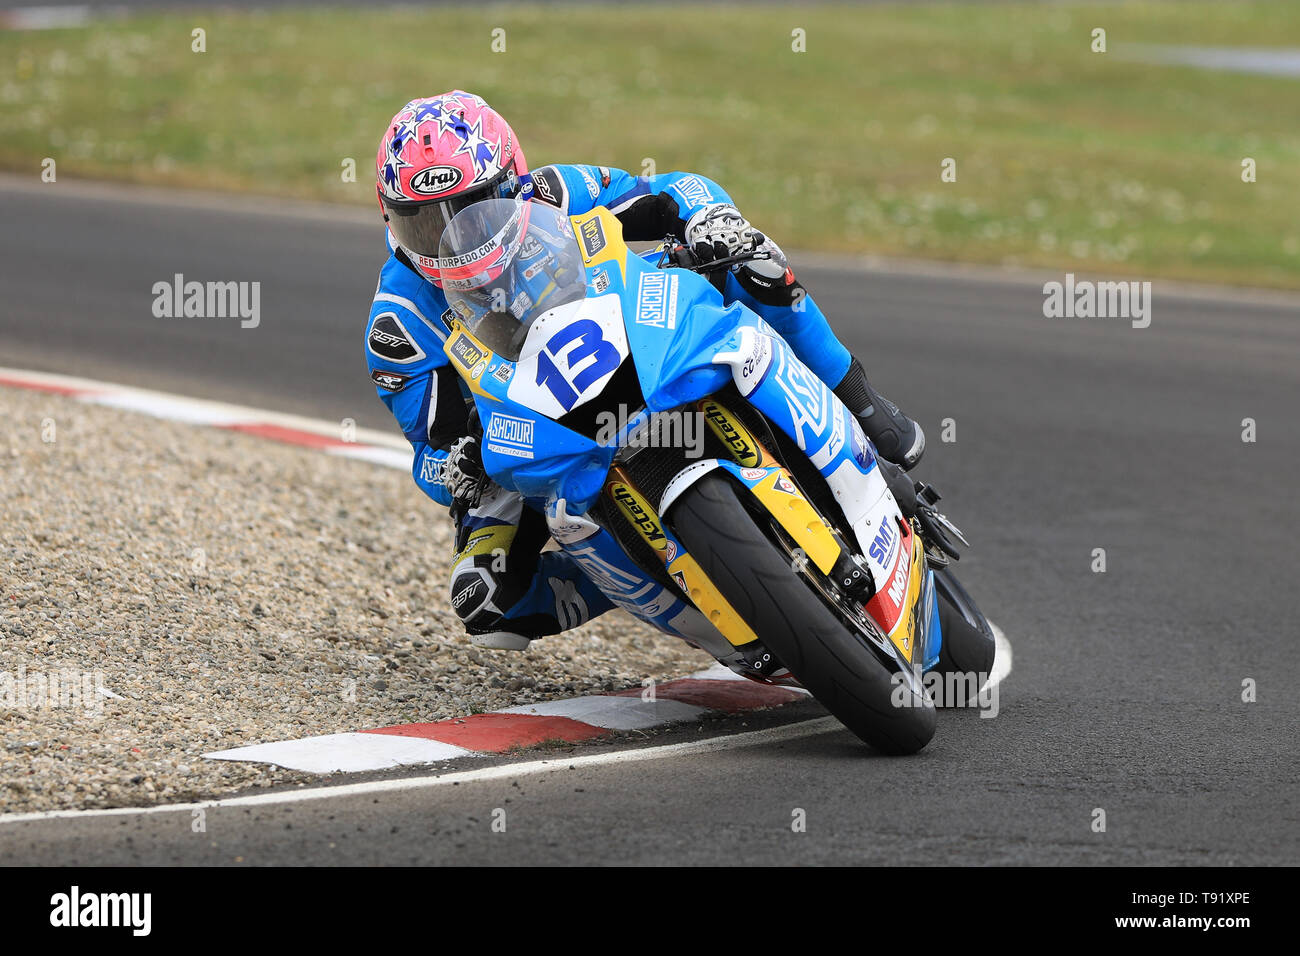 Portrush, Northern Ireland. 16th May, 2019. International North West 200 Motorcycle road racing, Thursday practice and evening racing; Lee Johnston was fastest on the Ashcourt Racing Yamaha during the SuperSport qualifying session Credit: Action Plus Sports/Alamy Live News - Stock Image